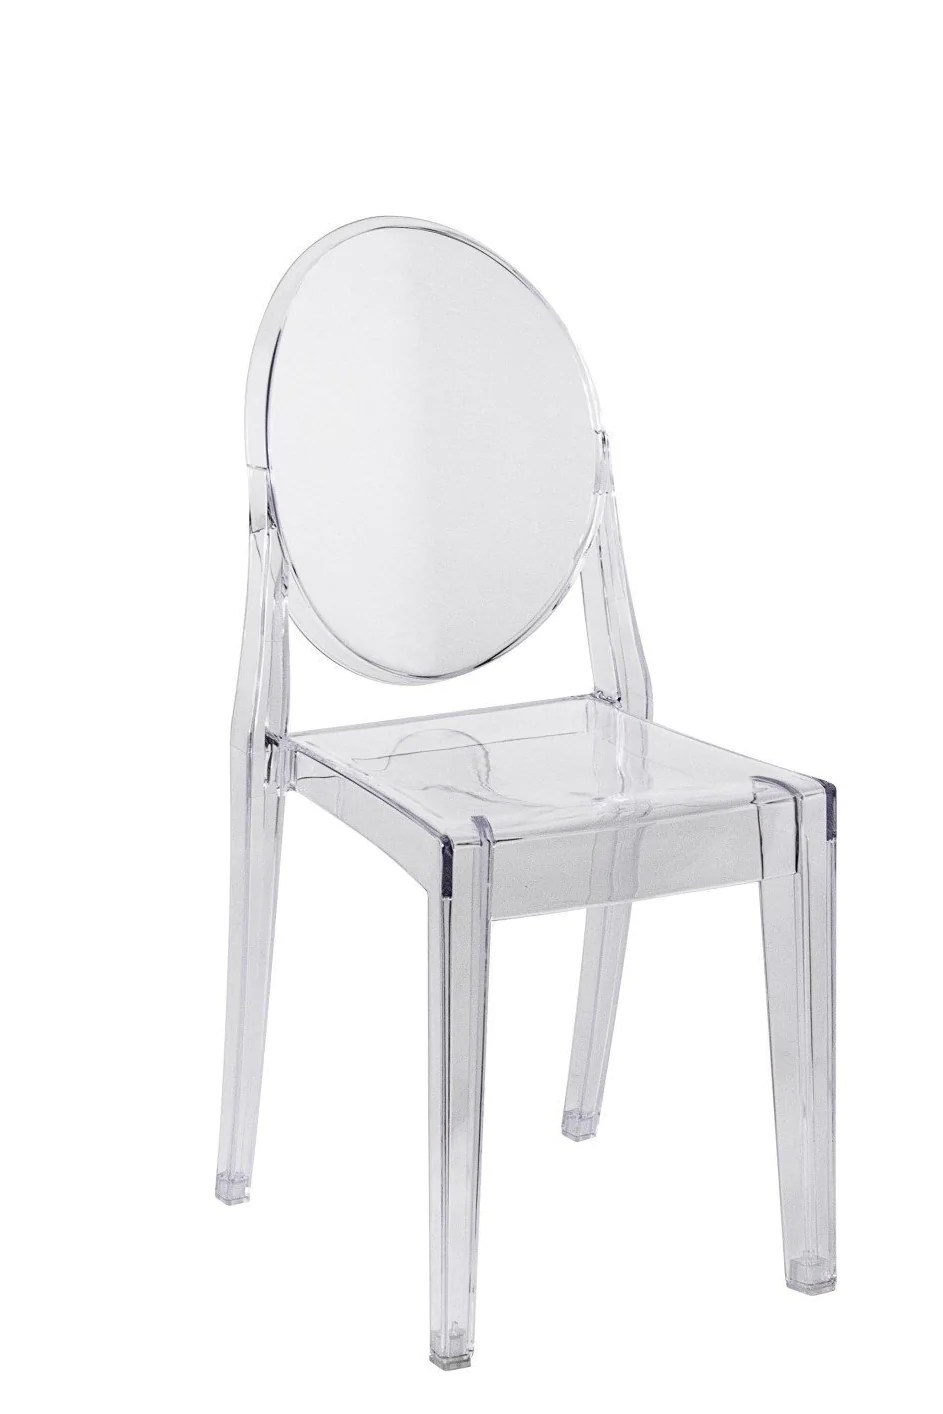 ghost chair replica teak lounge outdoor tko products small clear chairs for sale